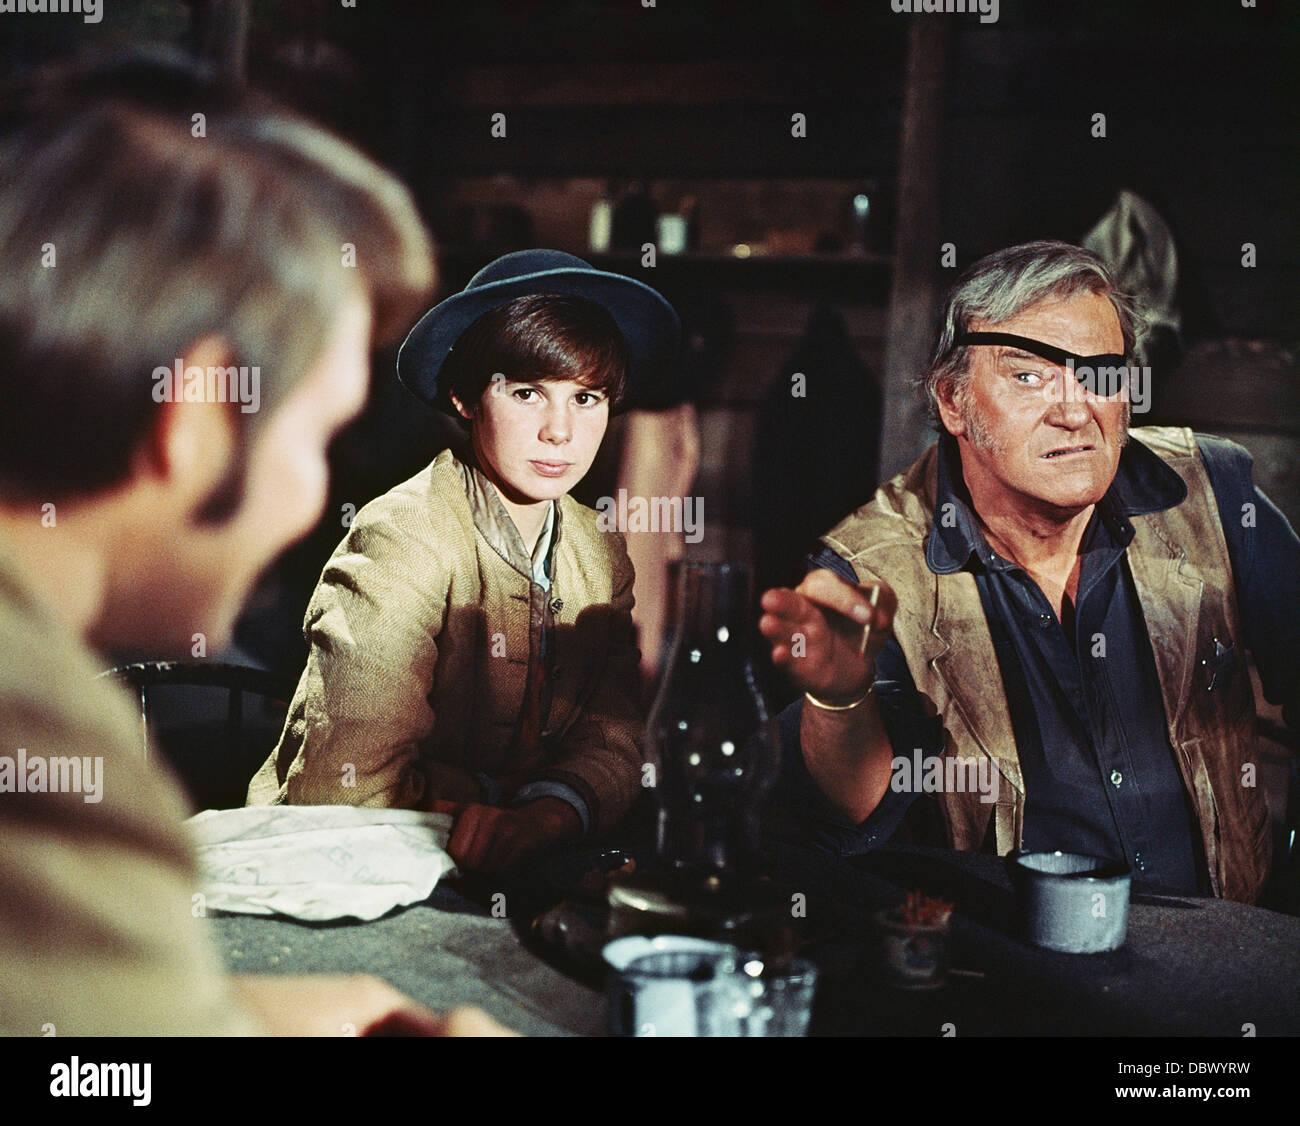 1960s 1969 MOTION PICTURE TRUE GRIT WITH JOHN WAYNE, KIM DARBY, GLEN CAMPBELL - Stock Image